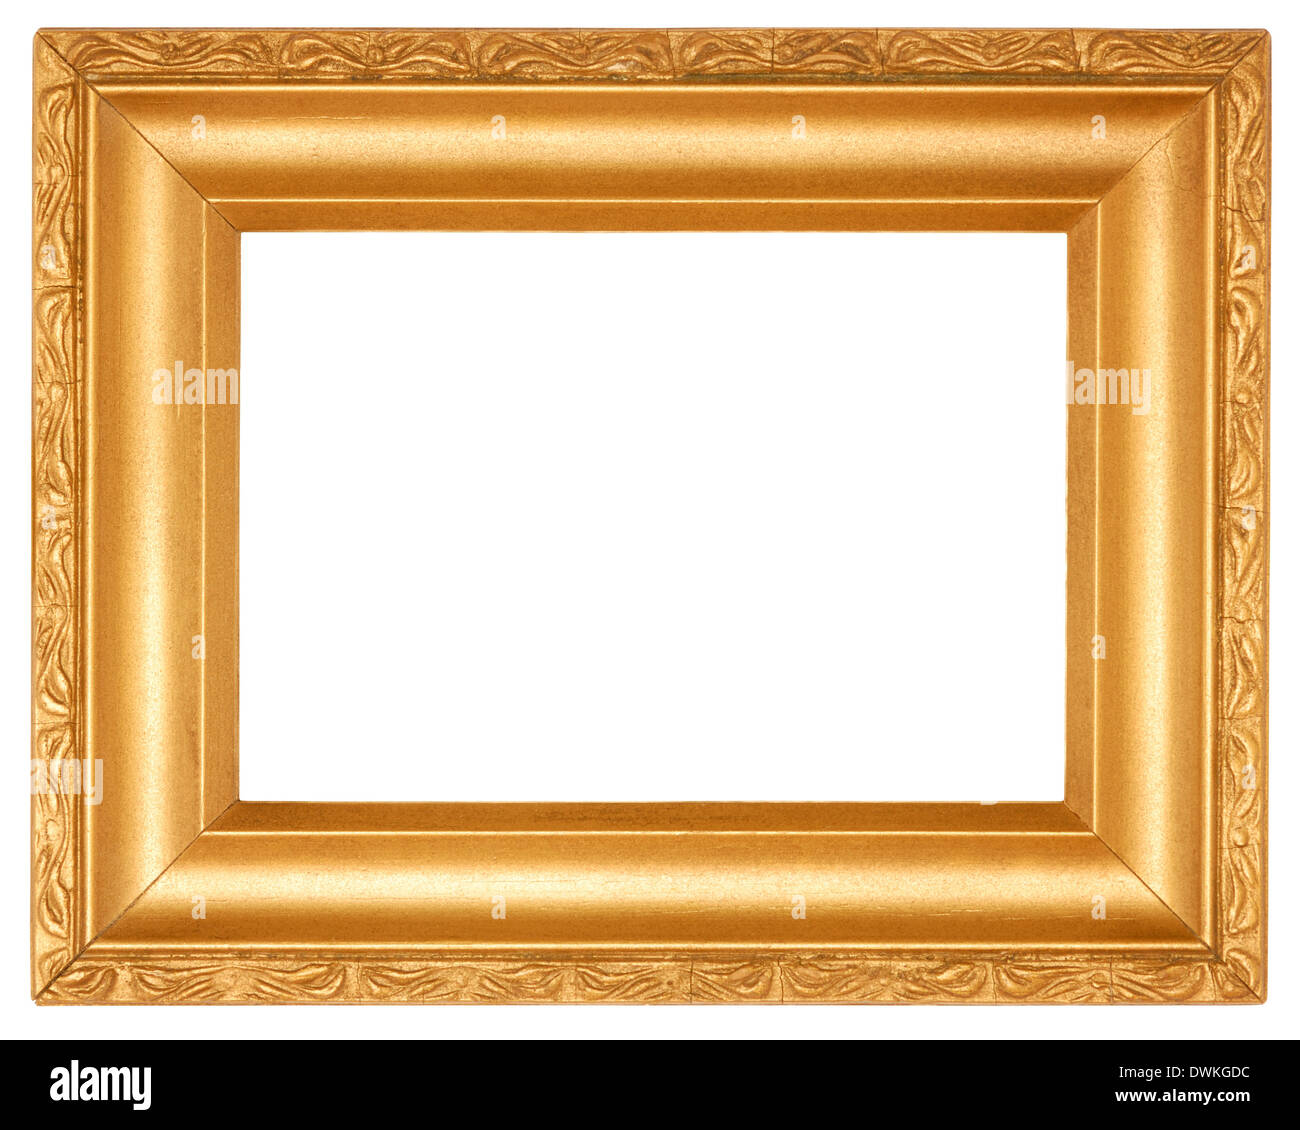 Digitaler Bilderrahmen Weiss Old Painting Gold Frame Stockfotos And Old Painting Gold